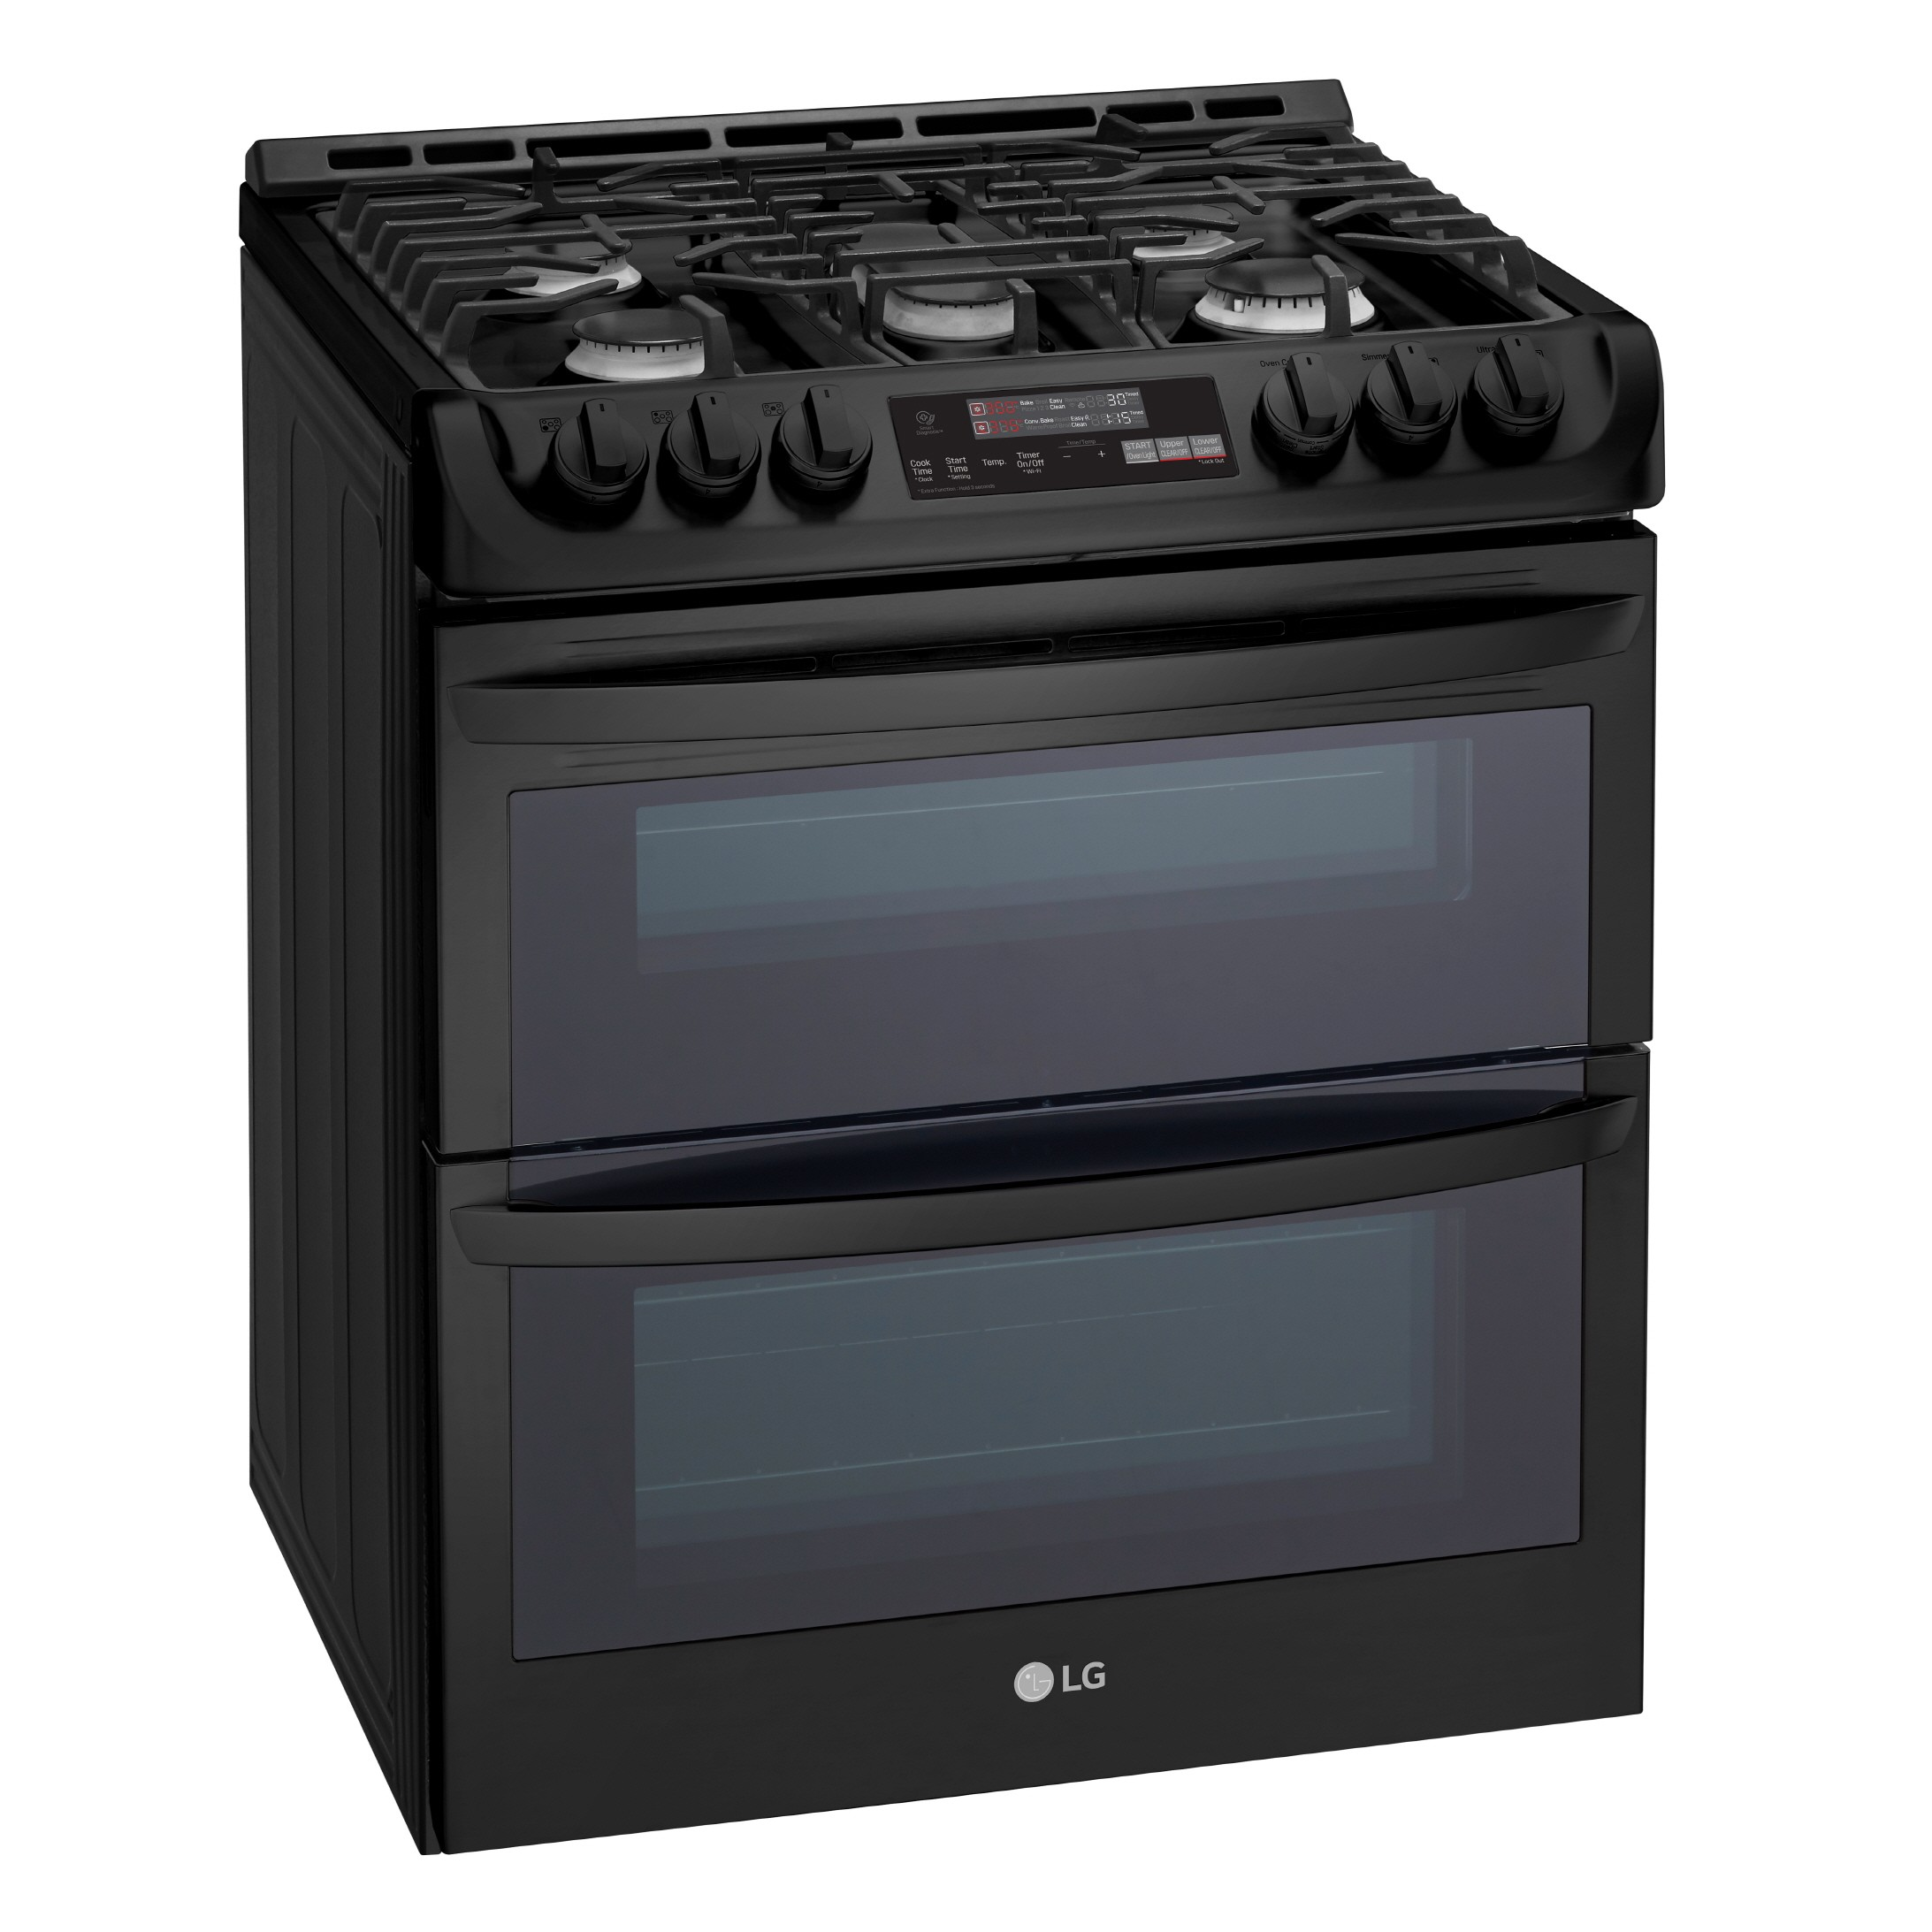 LG Smart Kitchen Oven 2